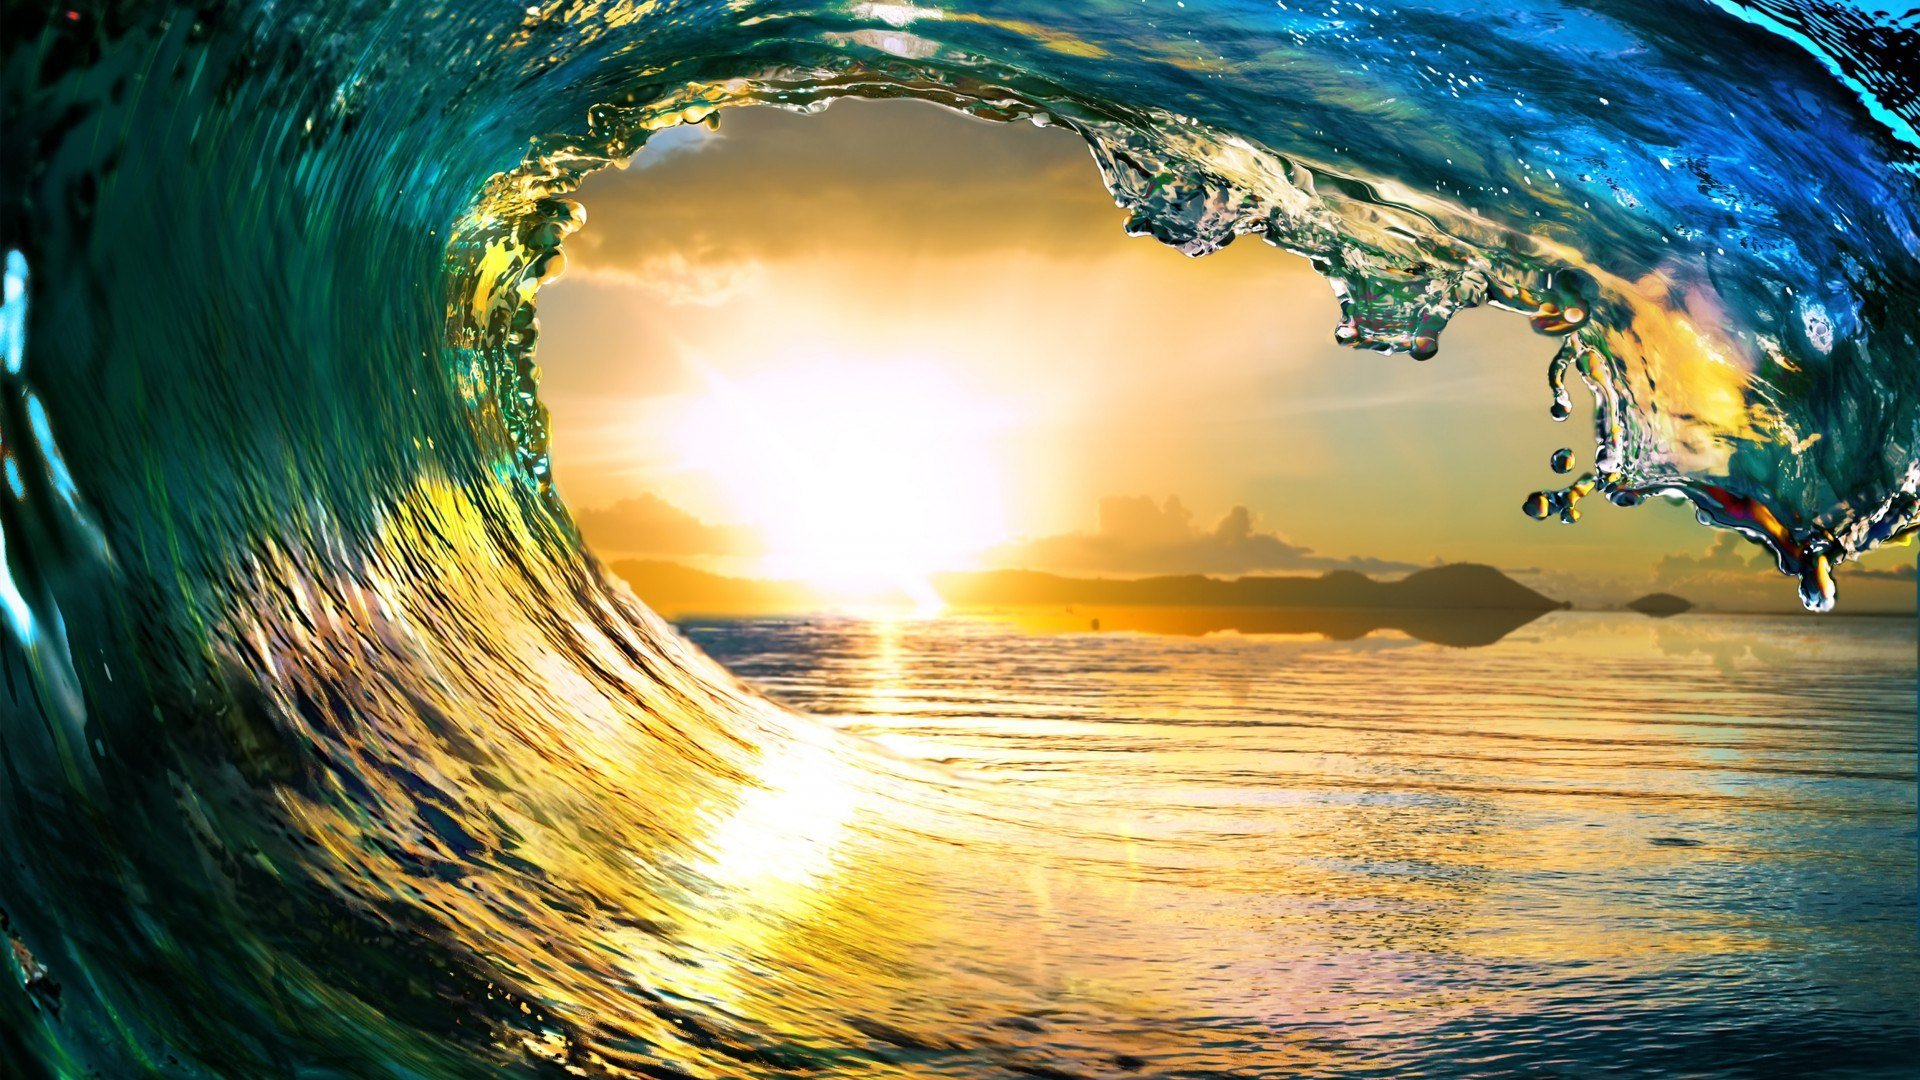 Best Wave Wallpaper Id 384745 For High Resolution Full Hd Desktop